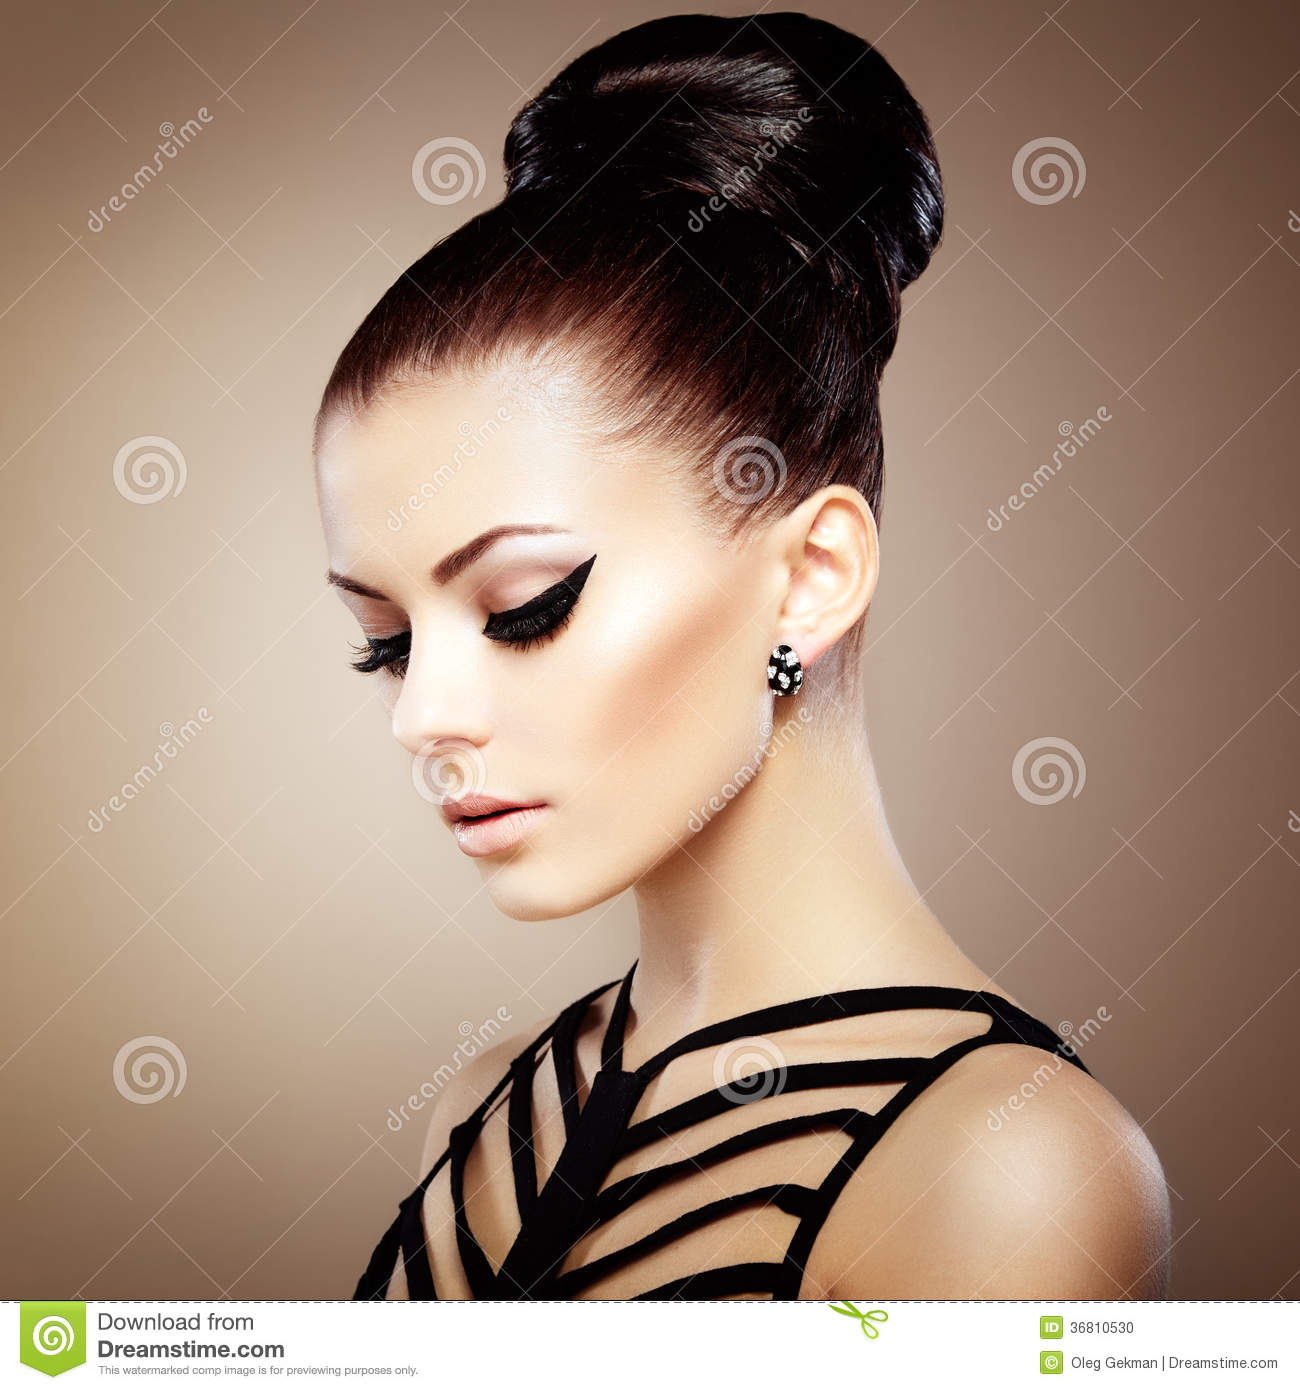 Hairstyle Stock Photos Images & Pictures 417 255 Images